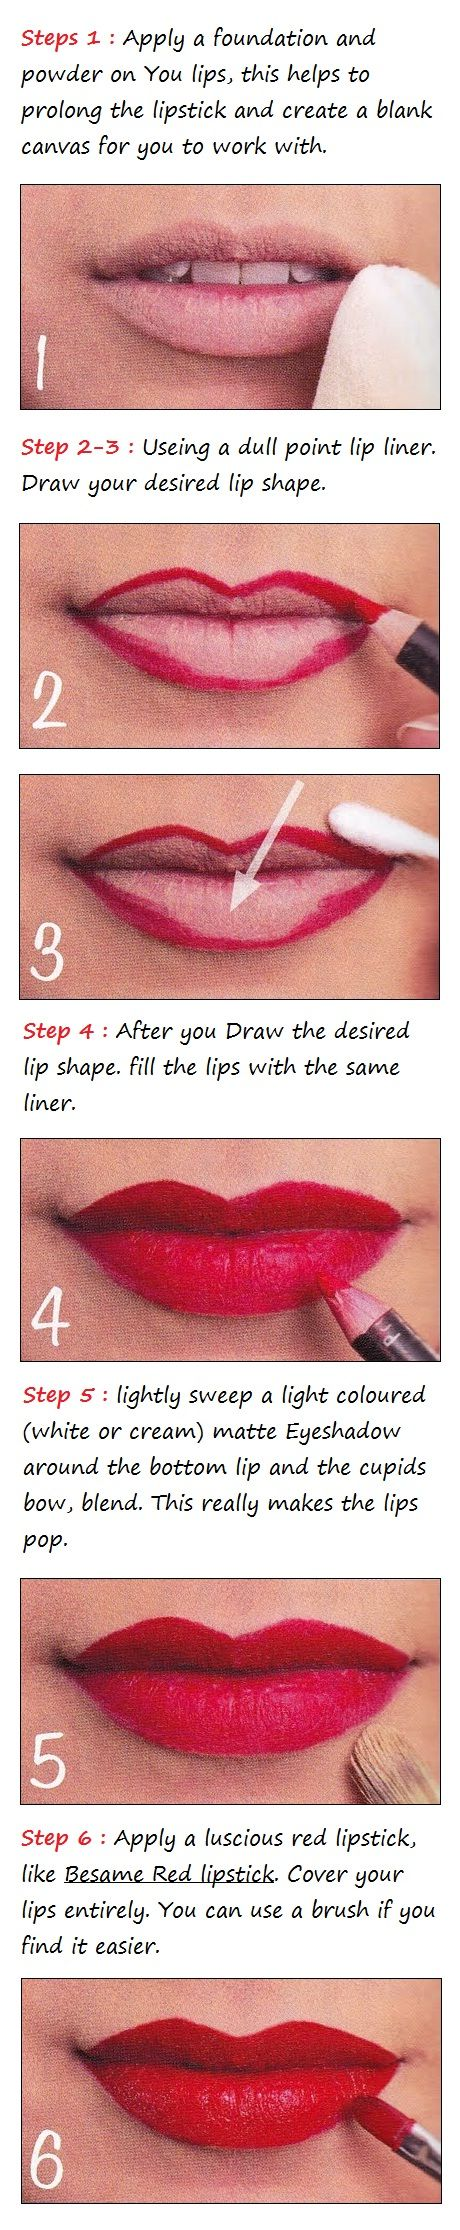 The secret to lipstick! Maybe I can actually get it to stay on for longer than like ten minutes...